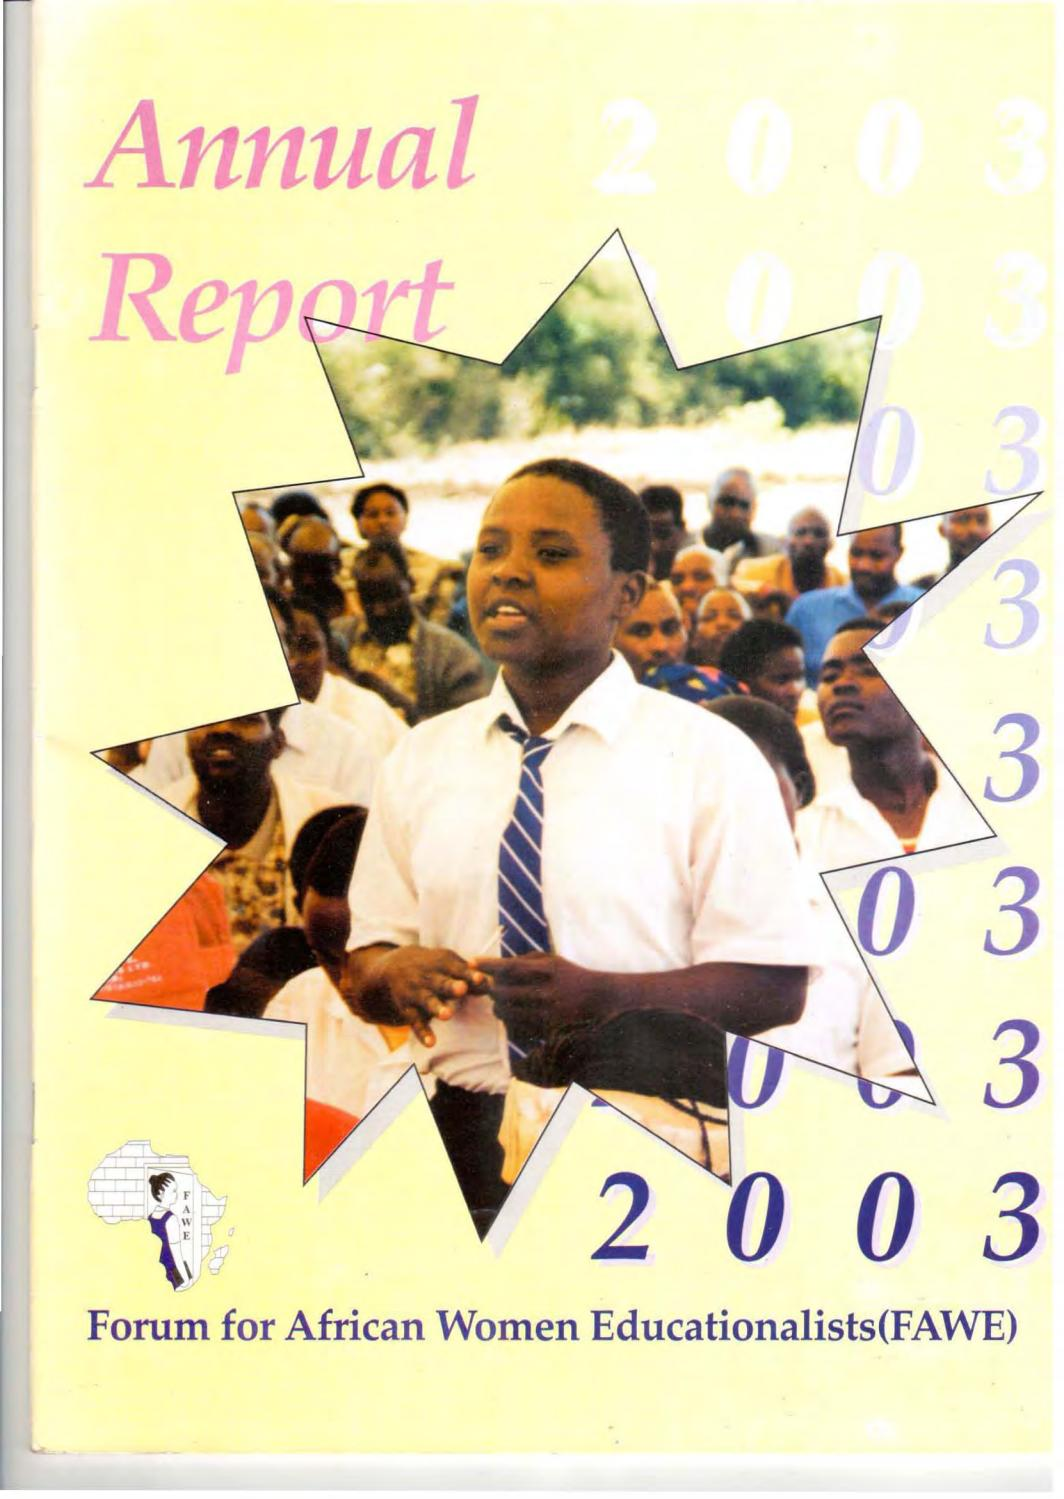 FAWE Annual Report 2003 By Forum For African Women Educationalists